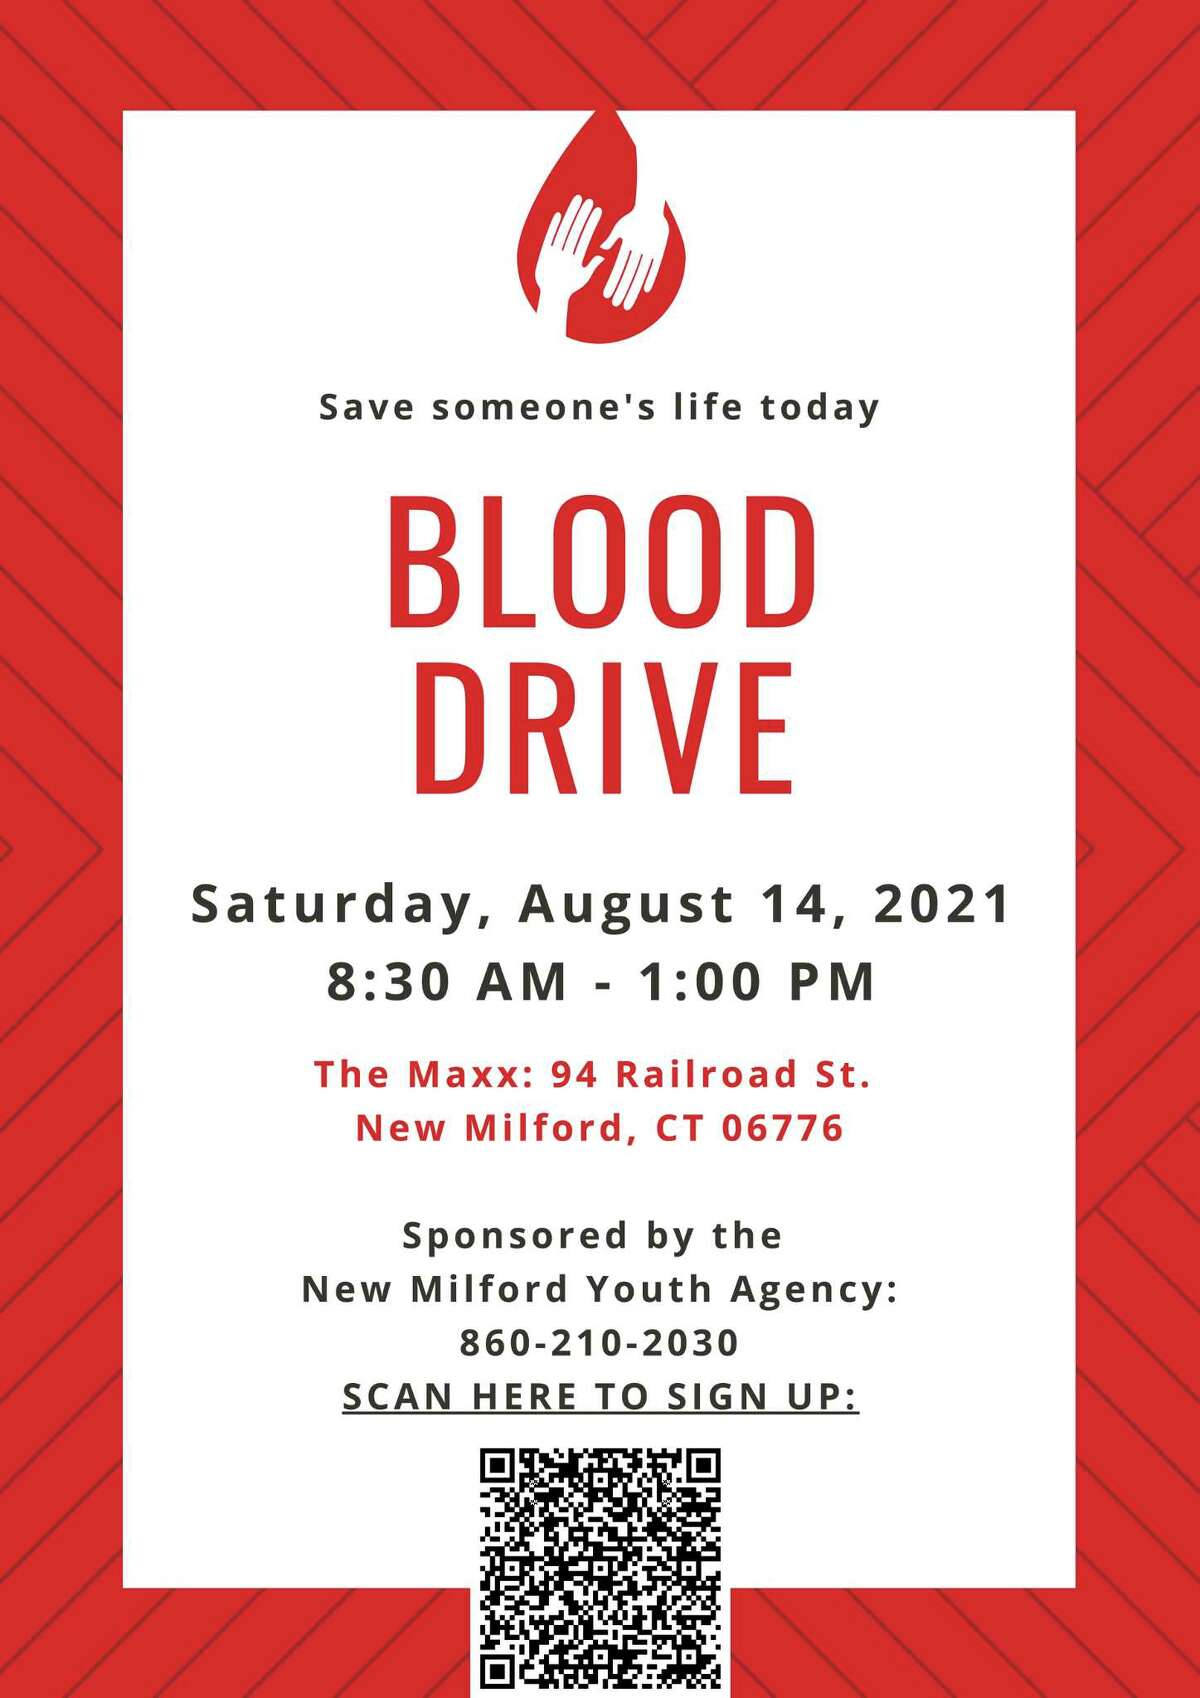 The New Milford Youth Agency is sponsoring a Blood Drive on Saturday, August 14, from 8:30 a.m. until 1 p.m., at The Maxx performance venue. Scan the bar code box on the flyer to sign up for the blood drive.